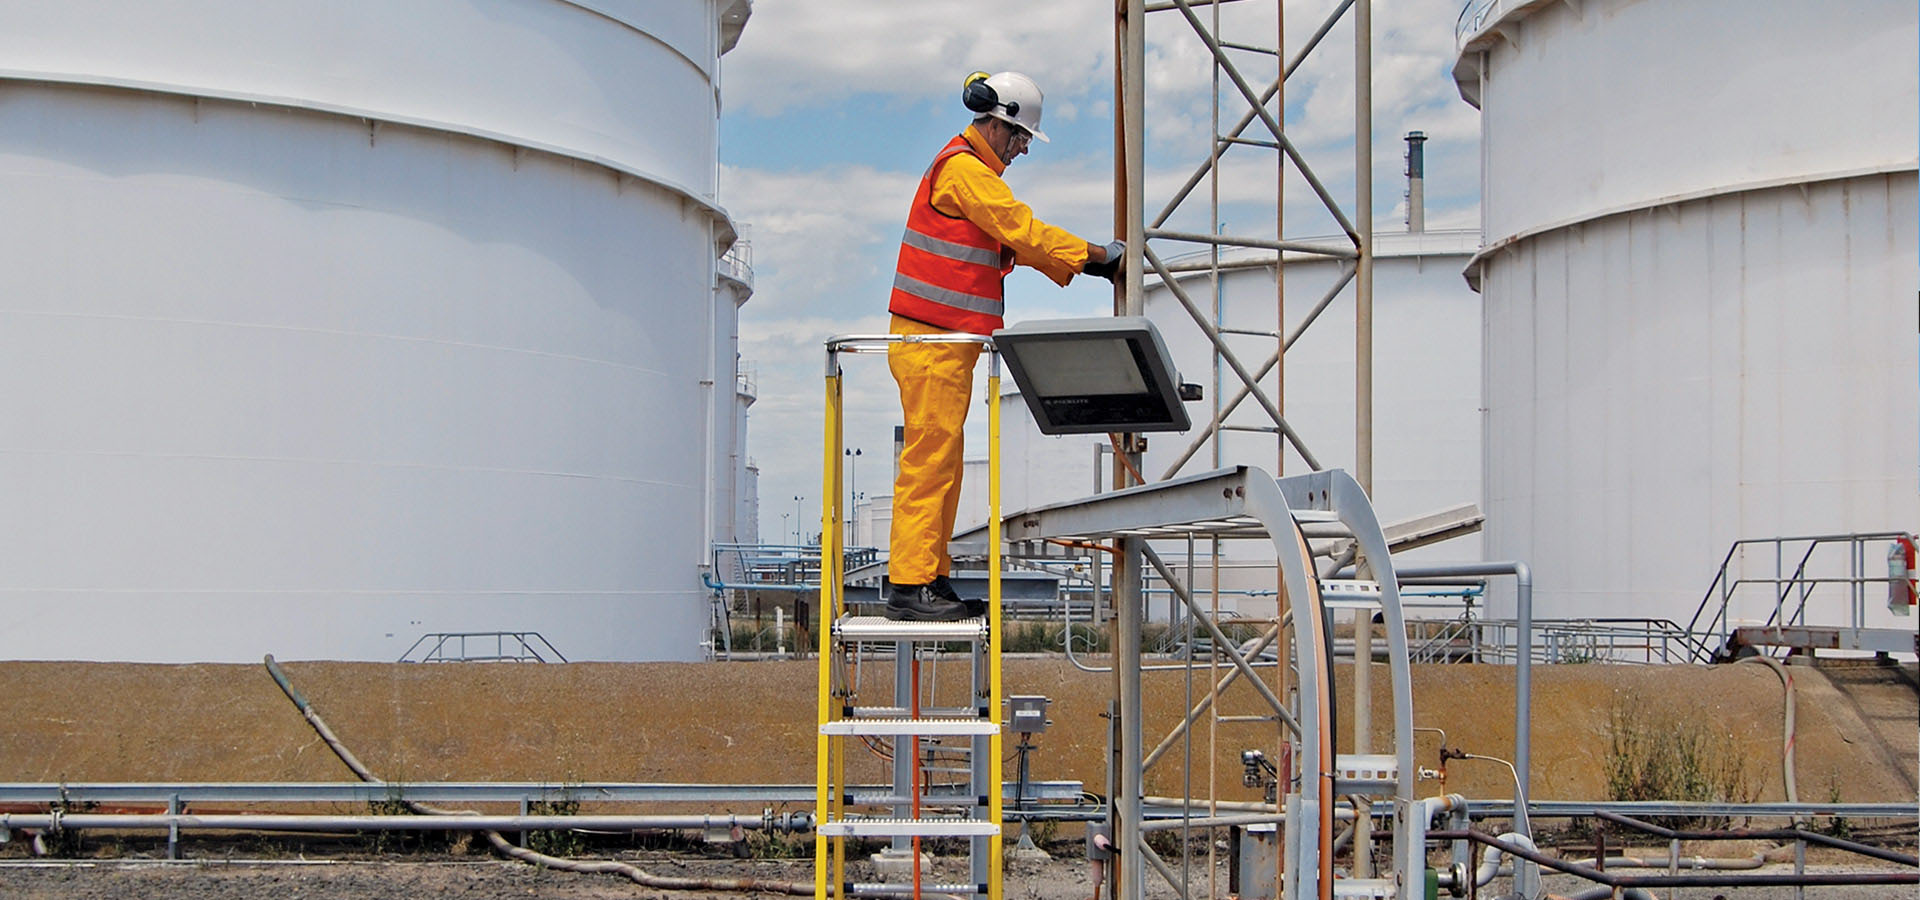 A refinery worker standing on the Branach fibreglass WorkMaster 450mm Step Platform Ladder.